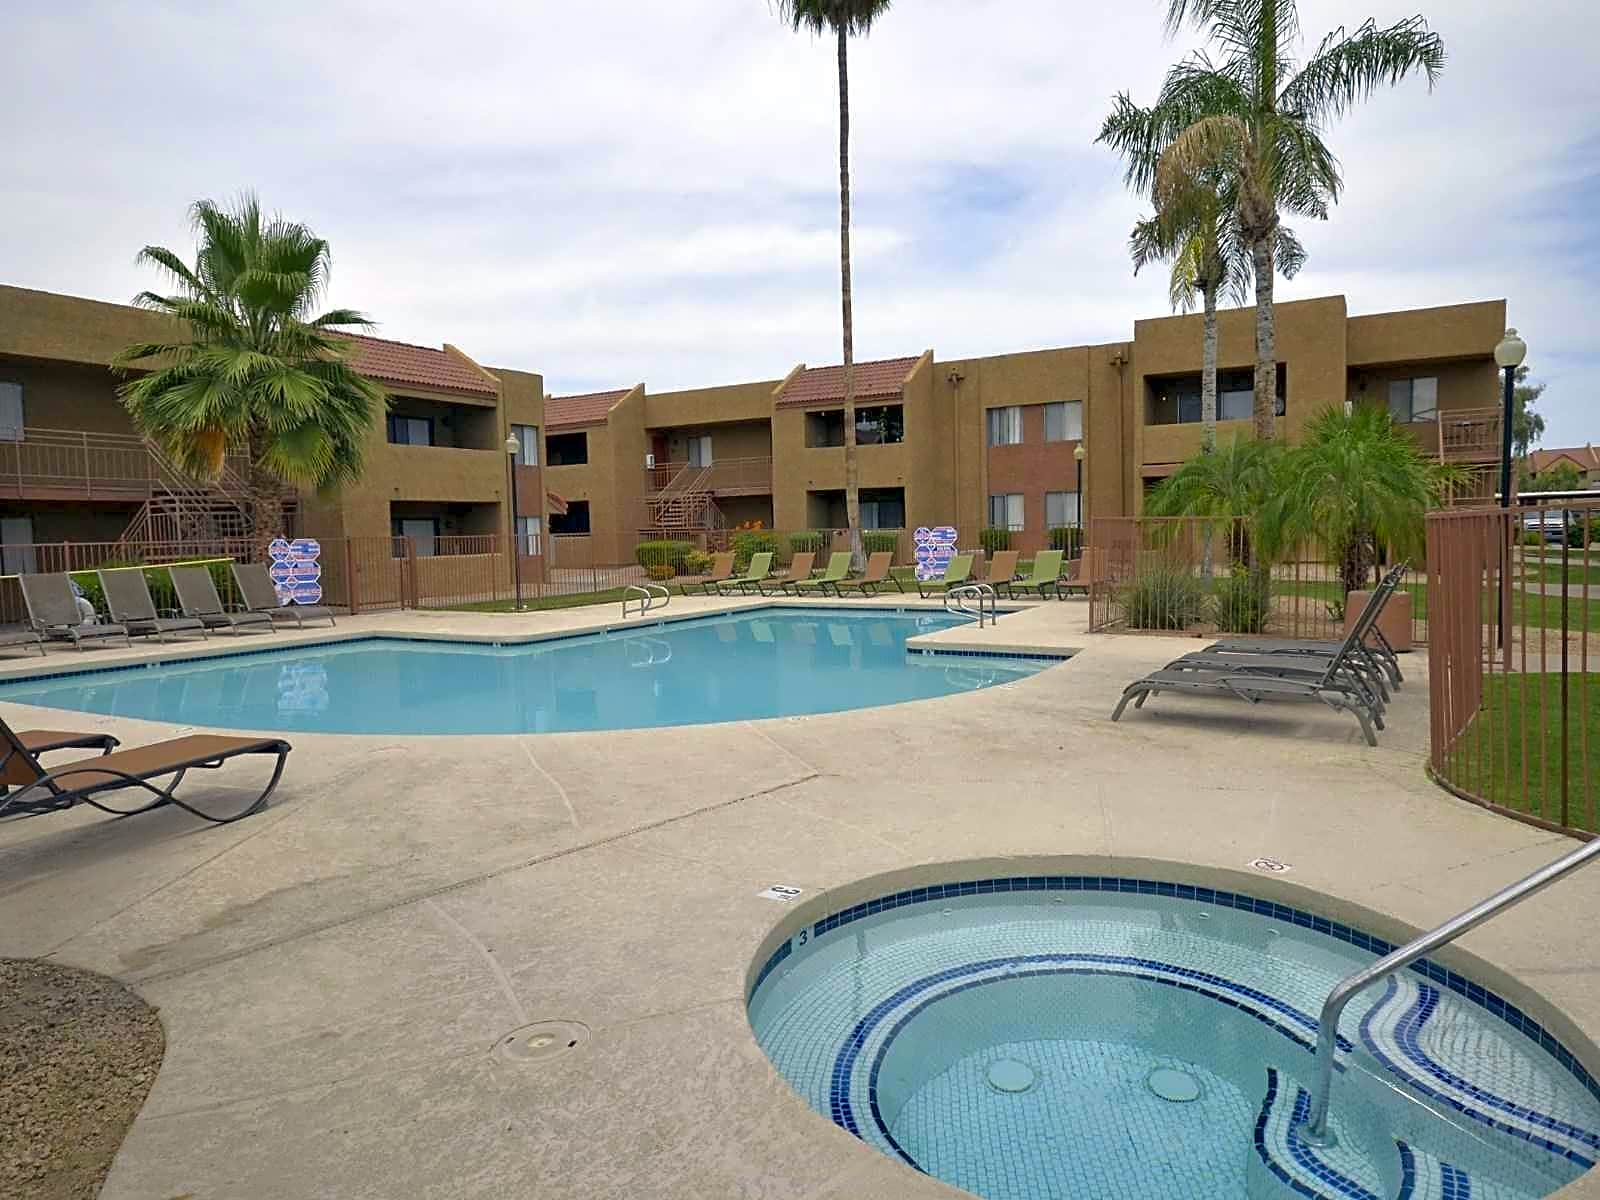 Photo: Phoenix Apartment for Rent - $381.00 / month; 1 Bd & 1 Ba